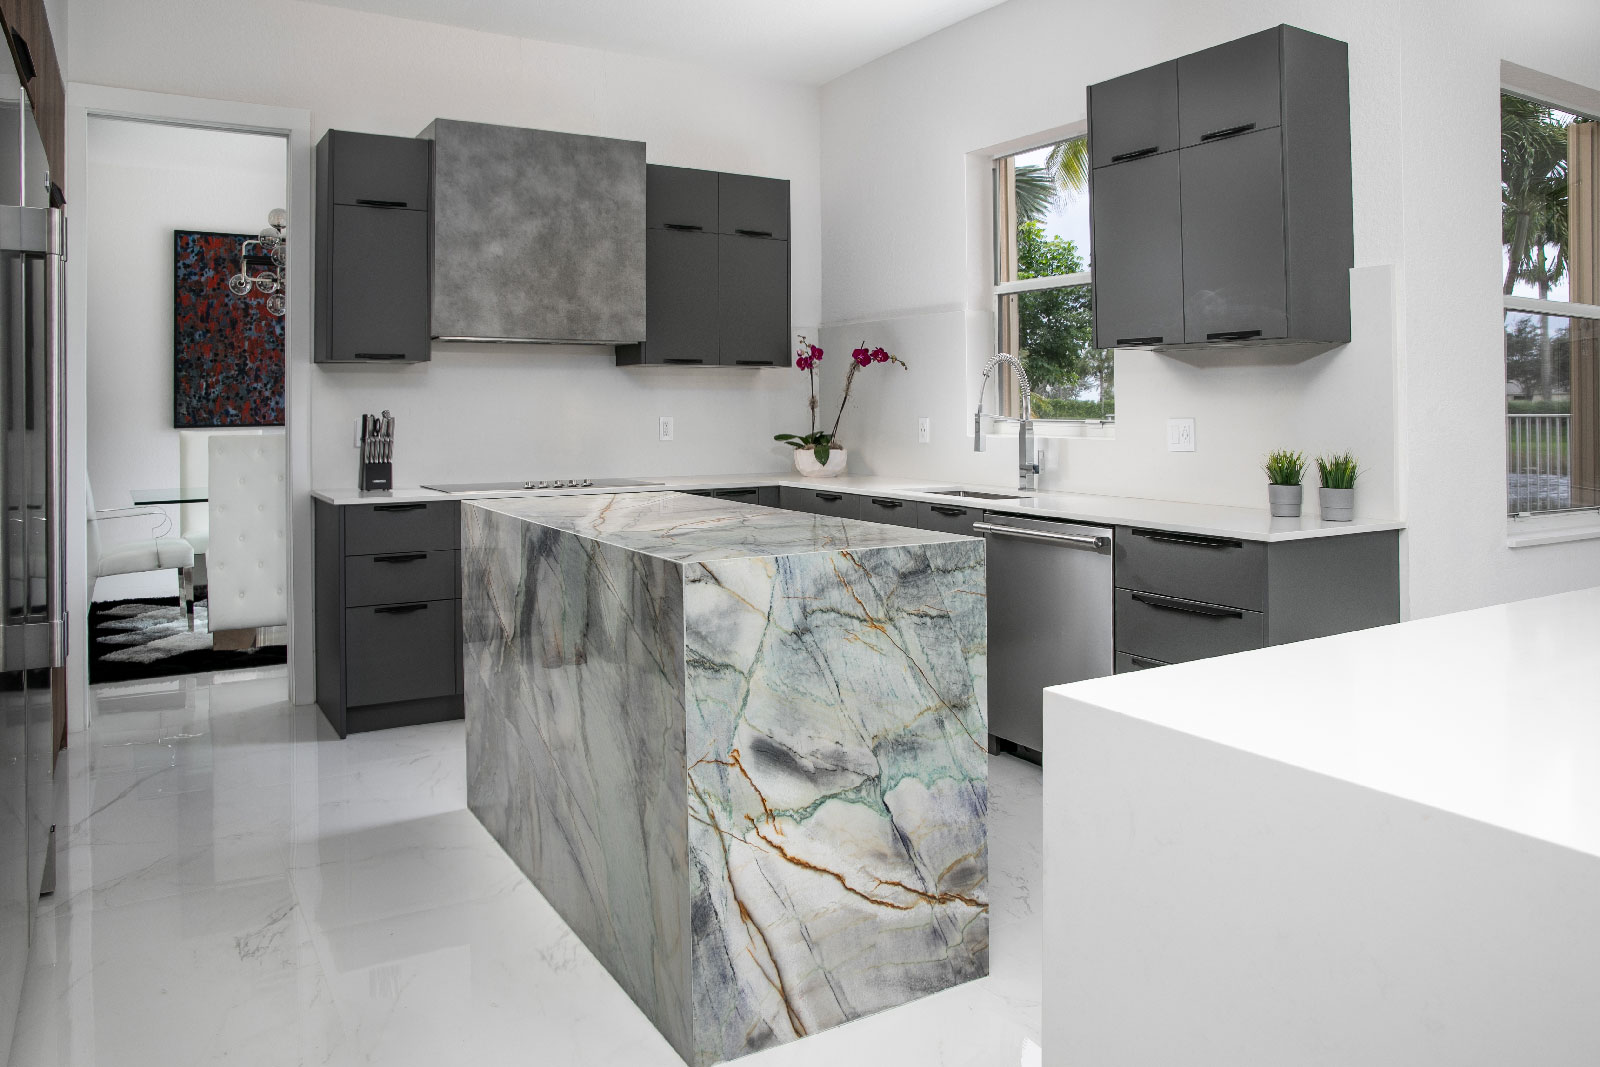 Arizona Shadow Kithchen 10, Primestones® Granite, Quartz, Marble